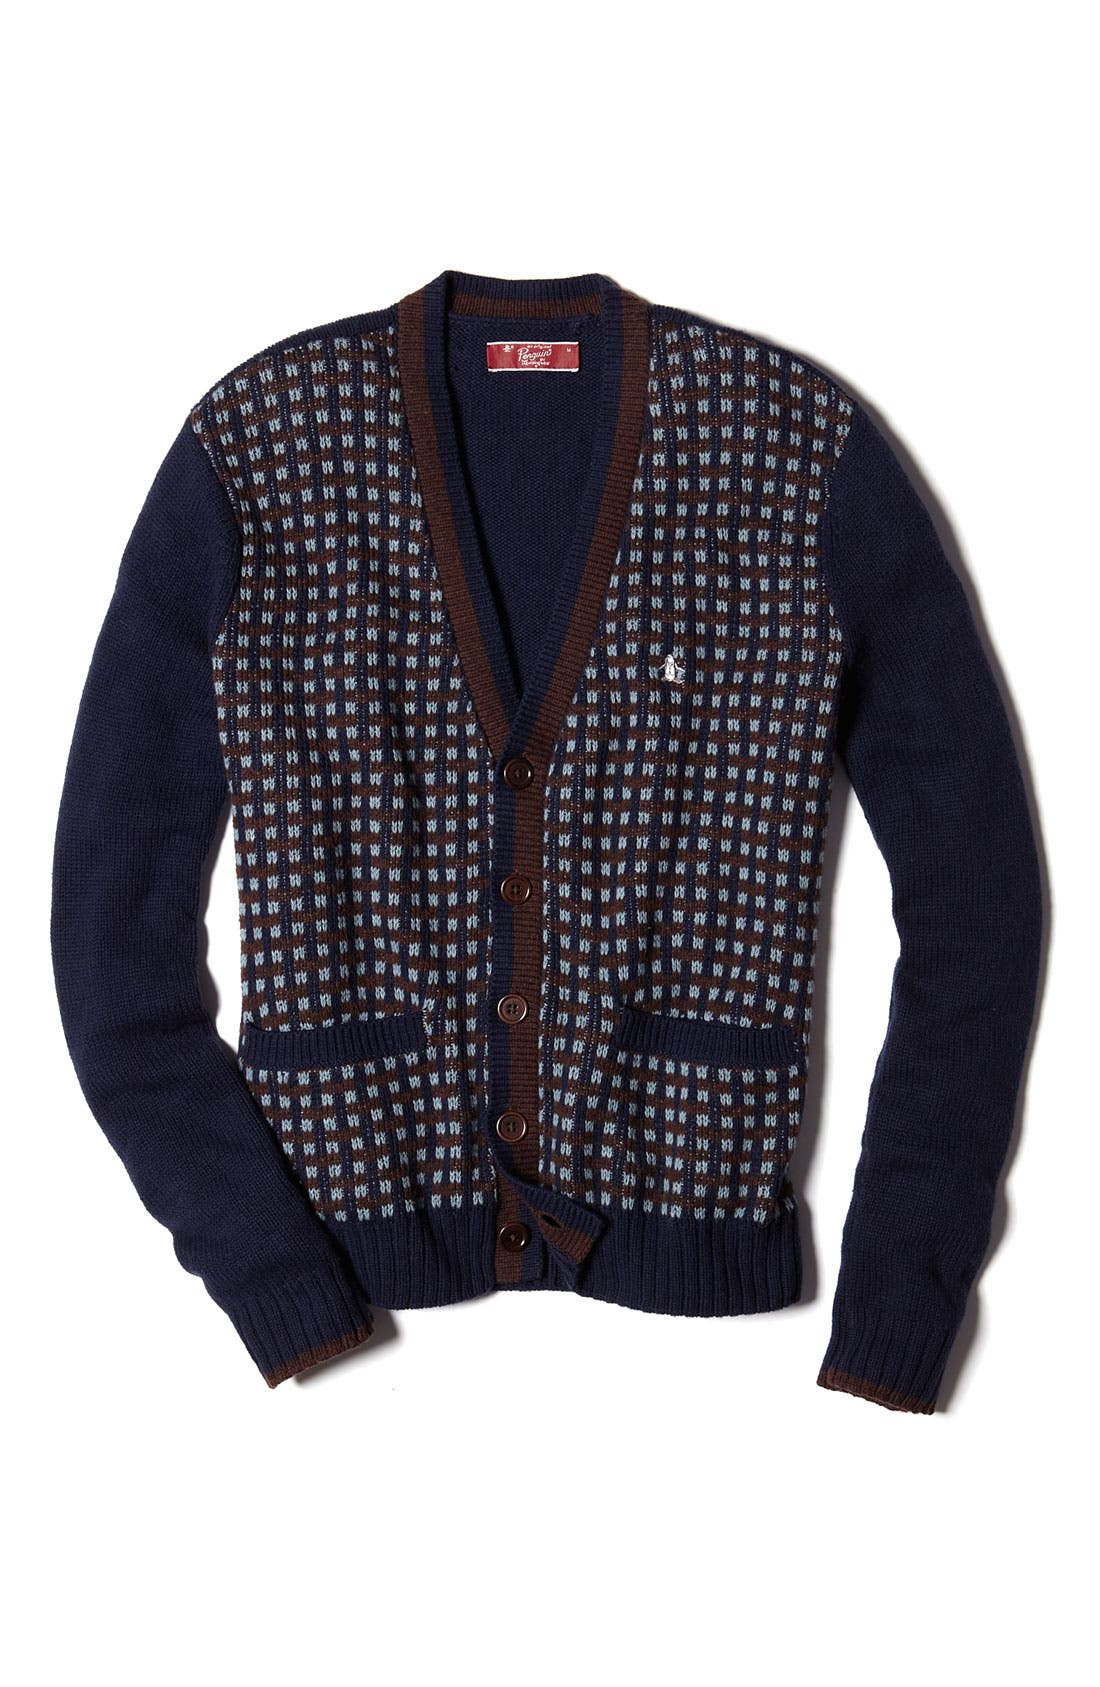 Alternate Image 3  - Original Penguin Cardigan